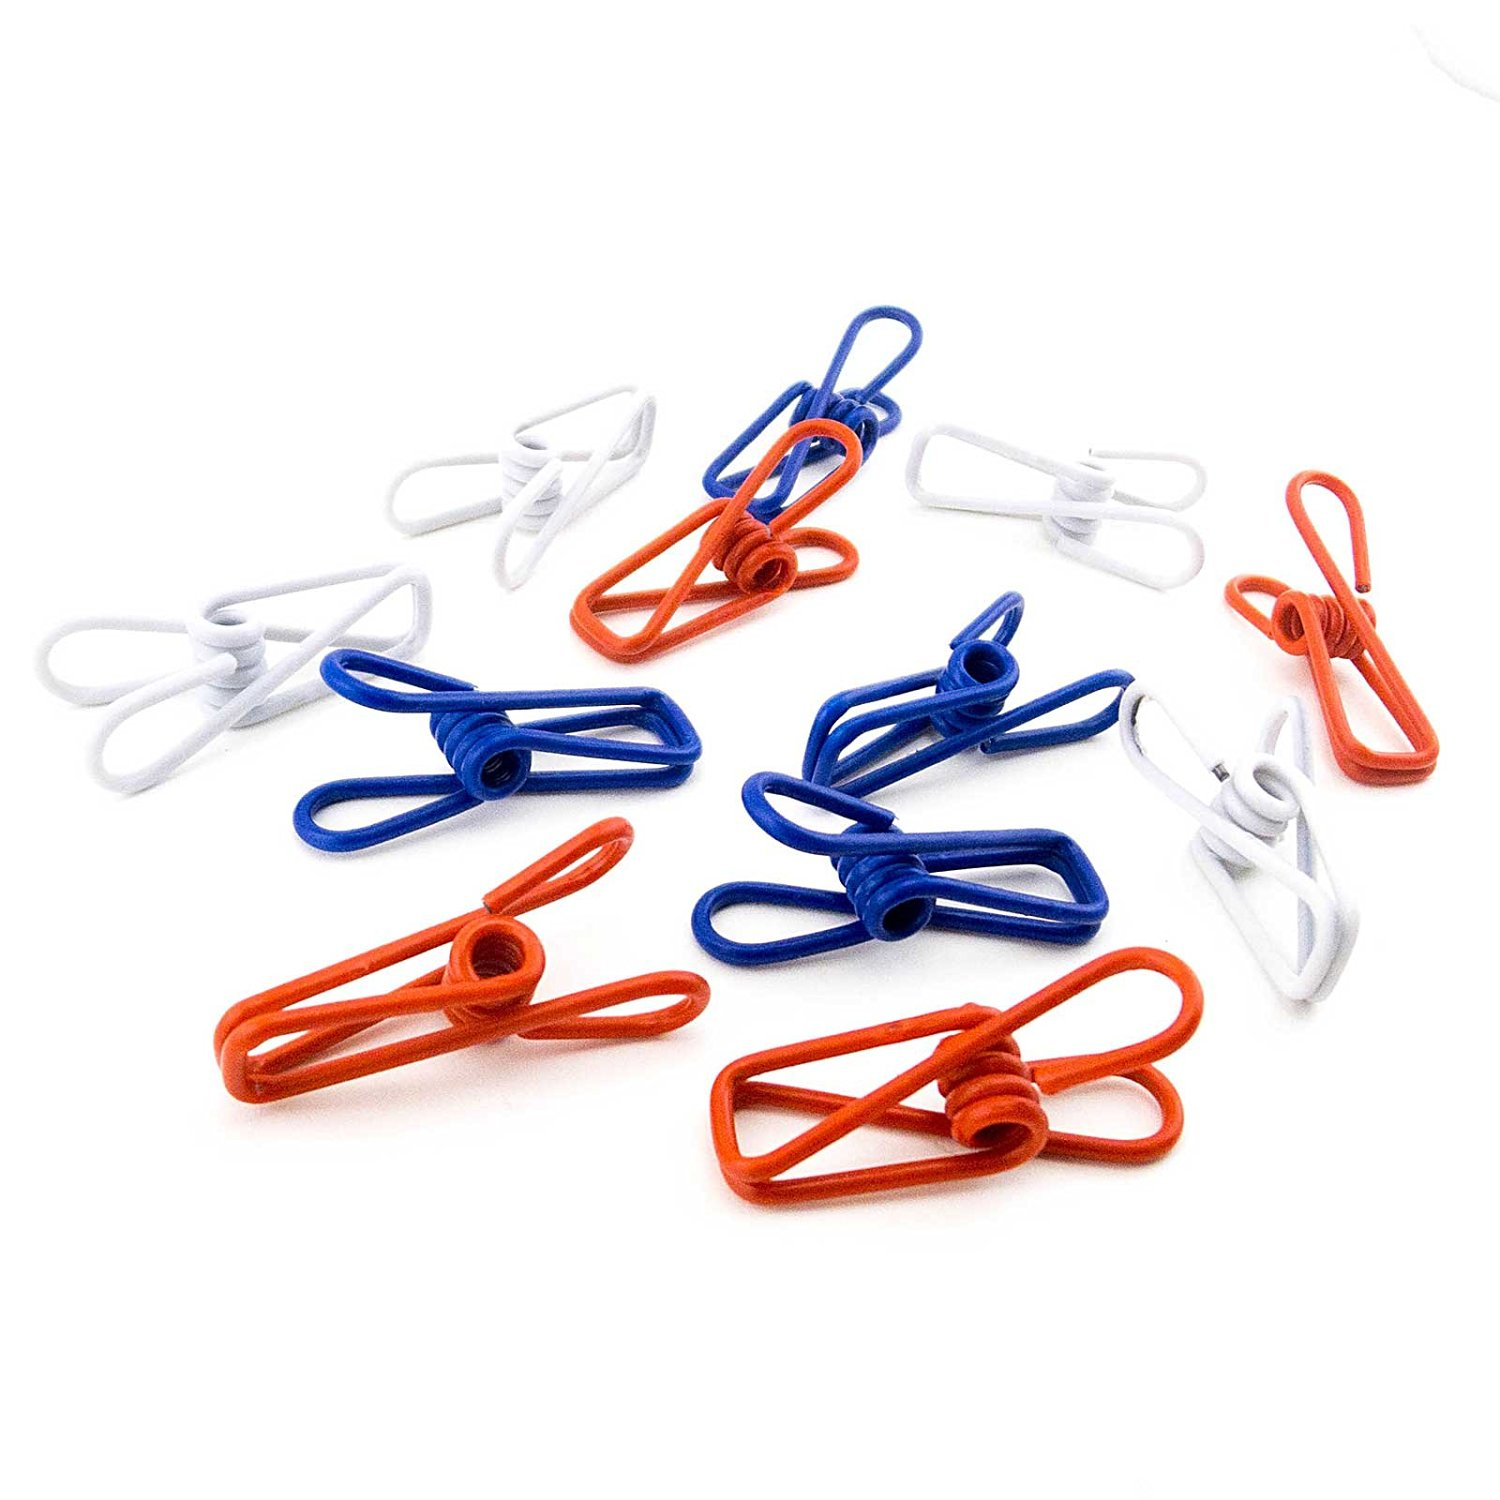 Cheap Spring Clips Fasteners, find Spring Clips Fasteners deals on ...